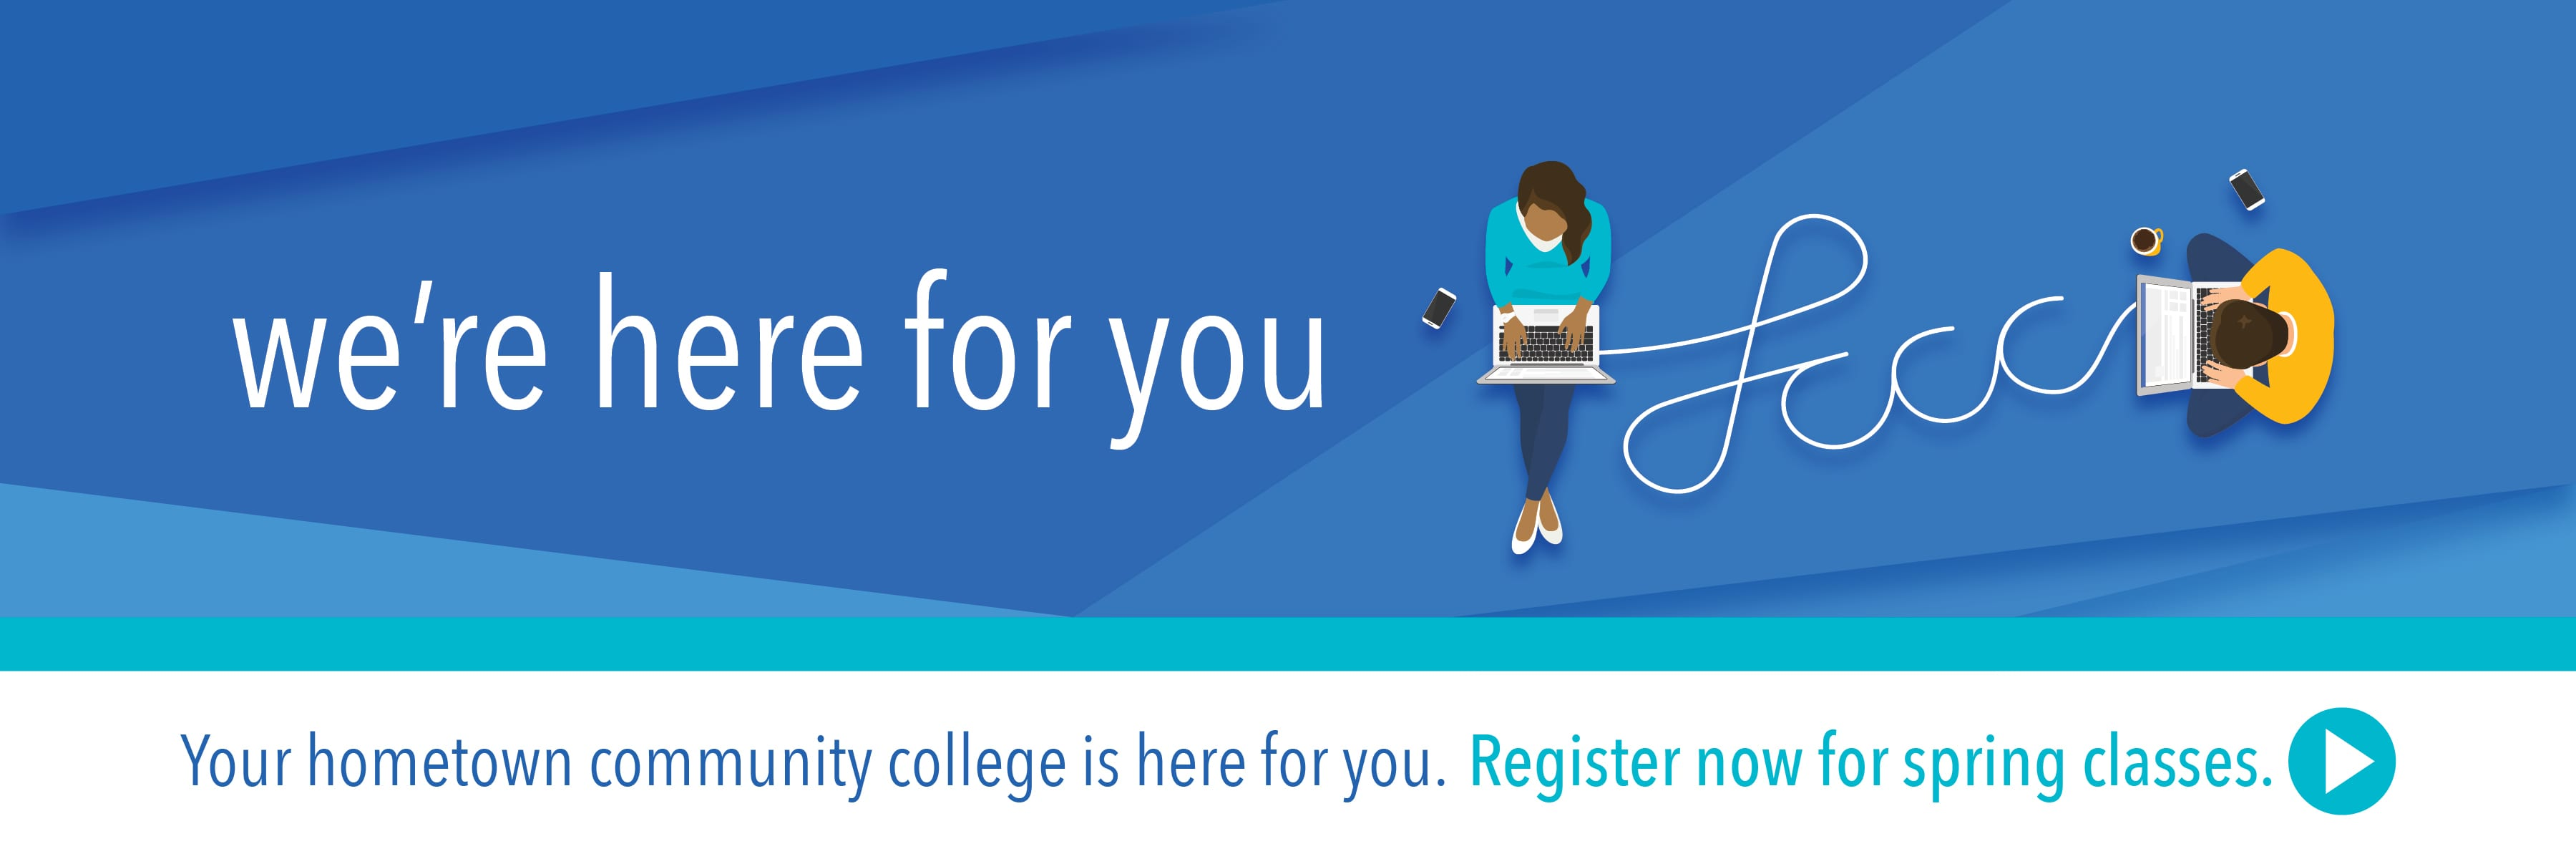 We're here for you. Your hometown college is here for you. Register now for spring classes.